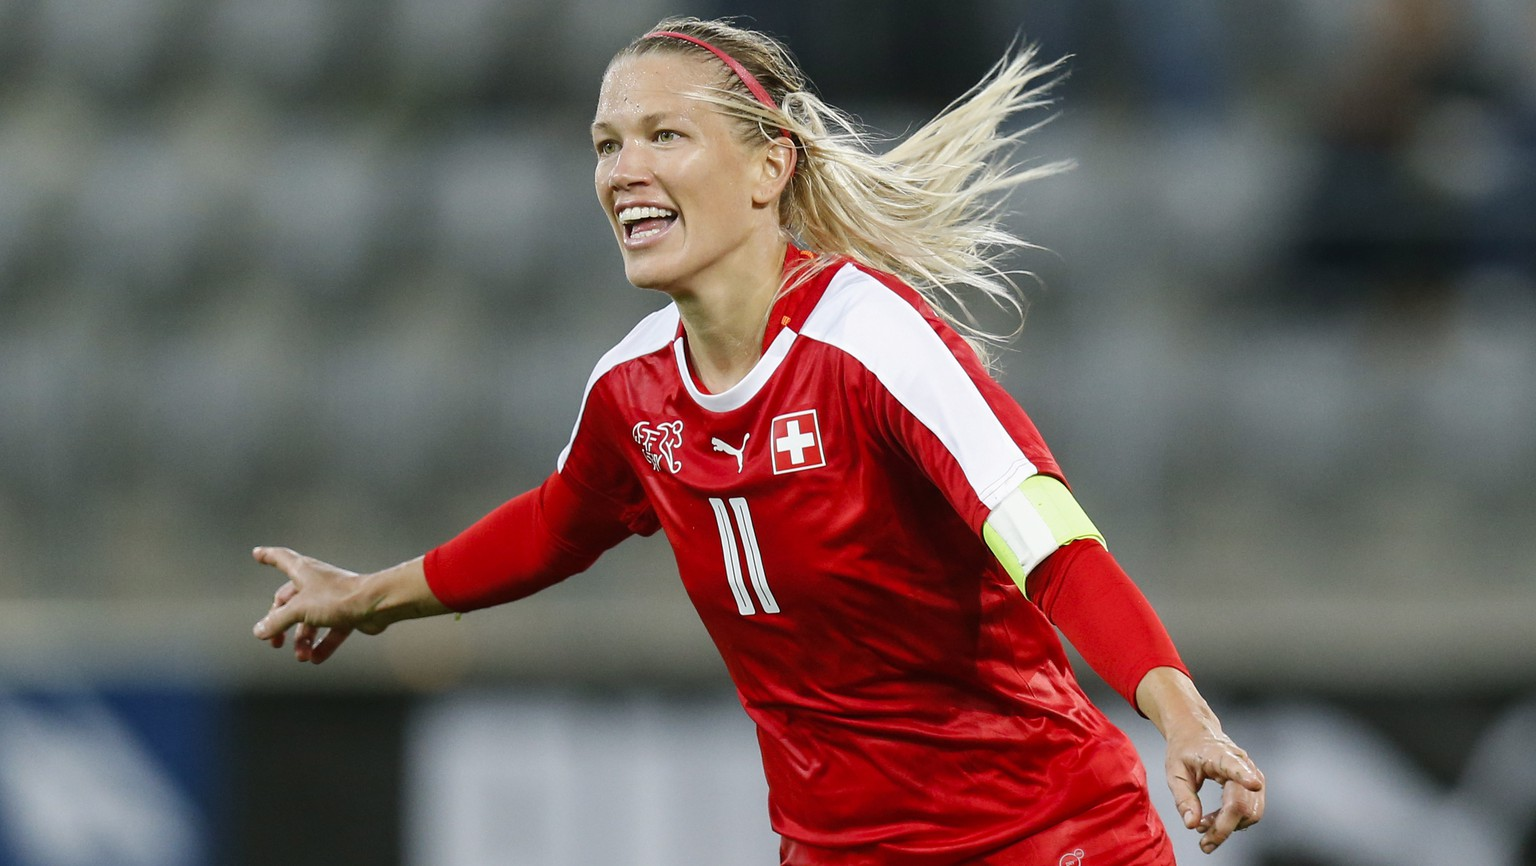 ARCHIV – LARA DICKENMANN ERLEIDET EINEN SCHWERE KNIEVERLETZUNG UND VERPASST DAS WM-PLAYOFF GEGEN DIE NIEDERLANDE – Switzerland's Lara Dickenmann celebrates after scoring the 2-1 during the FIFA Women's World Cup 2019 qualifying soccer match between Switzerland and Poland at the Tissot Arena in Biel, Switzerland, Tuesday, September 19, 2017. (KEYSTONE/Peter Klaunzer)